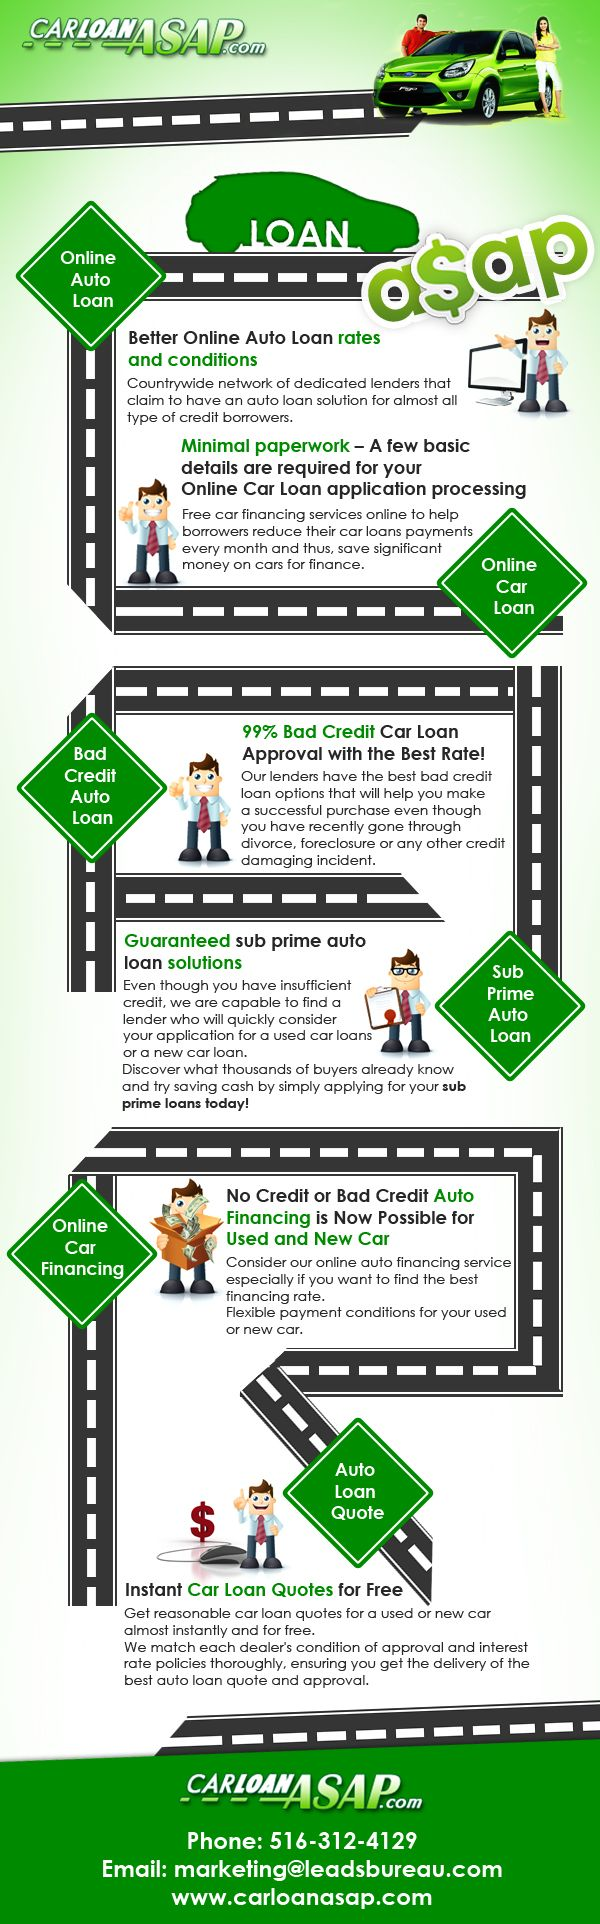 Carloanasap provides online auto loan services regardless of any credit situation it also provides all